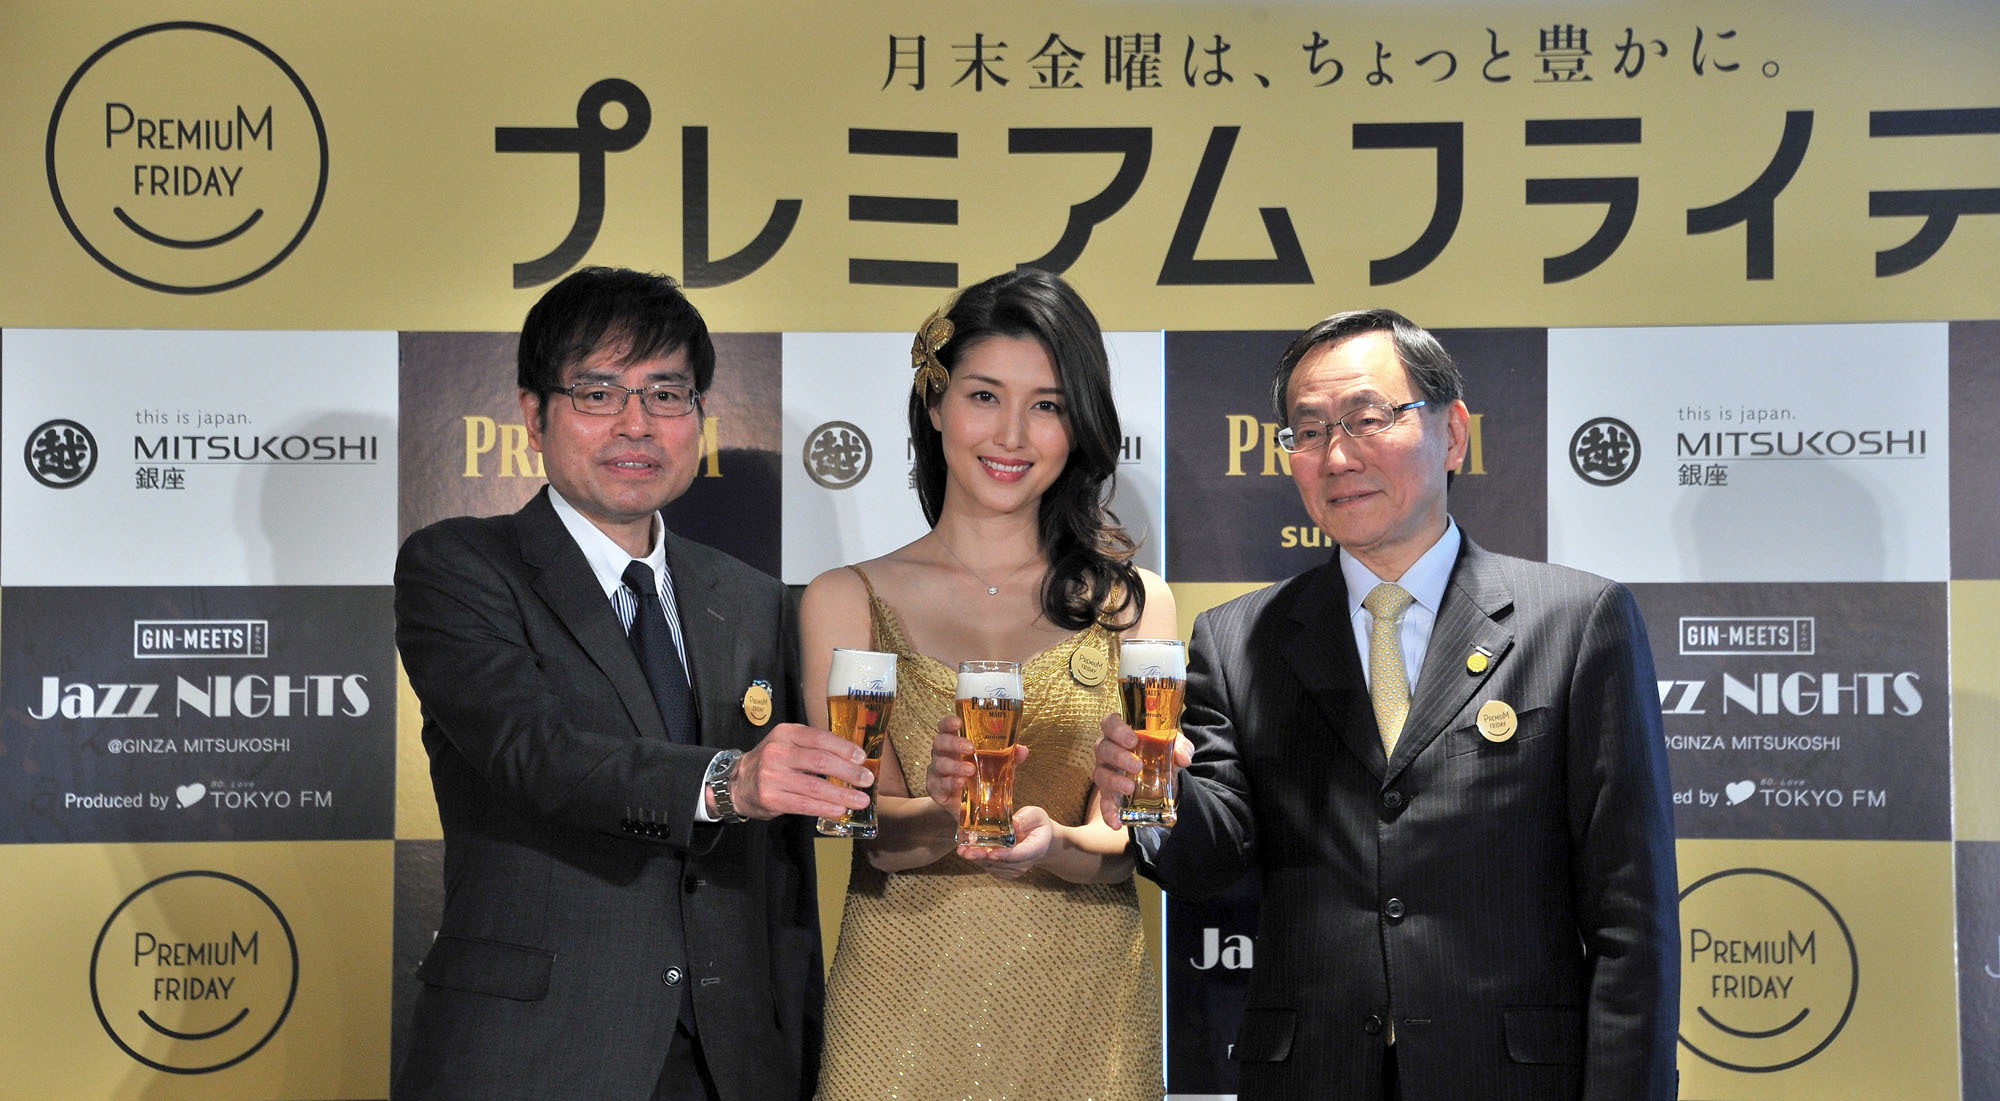 From left: Executive Officer and General Manager of Mitsukoshi Ginza Makoto Asaka raises a glass with actress Manami Hashimoto and Vice President of Suntory Holdings Ltd. Yasunori Aiba at Mitsukoshi's Premium Friday opening ceremony at Mitsukoshi Ginza on Feb. 24. | YOSHIAKI MIURA